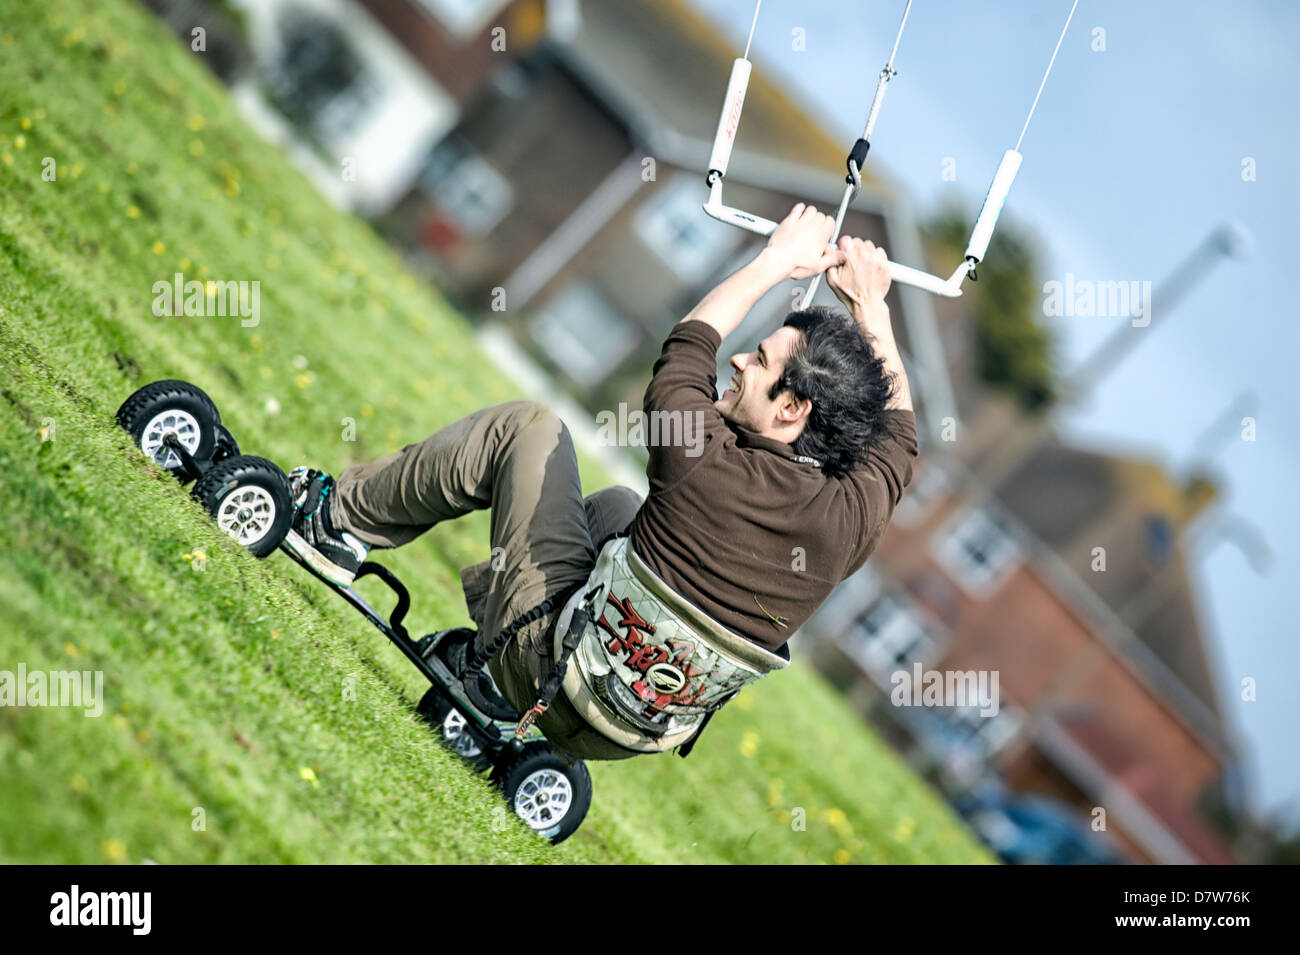 A land boarder at speed on freshly cut grass at Goring Gap, Worthing. Features Slight Blur bue to speed of action - Stock Image